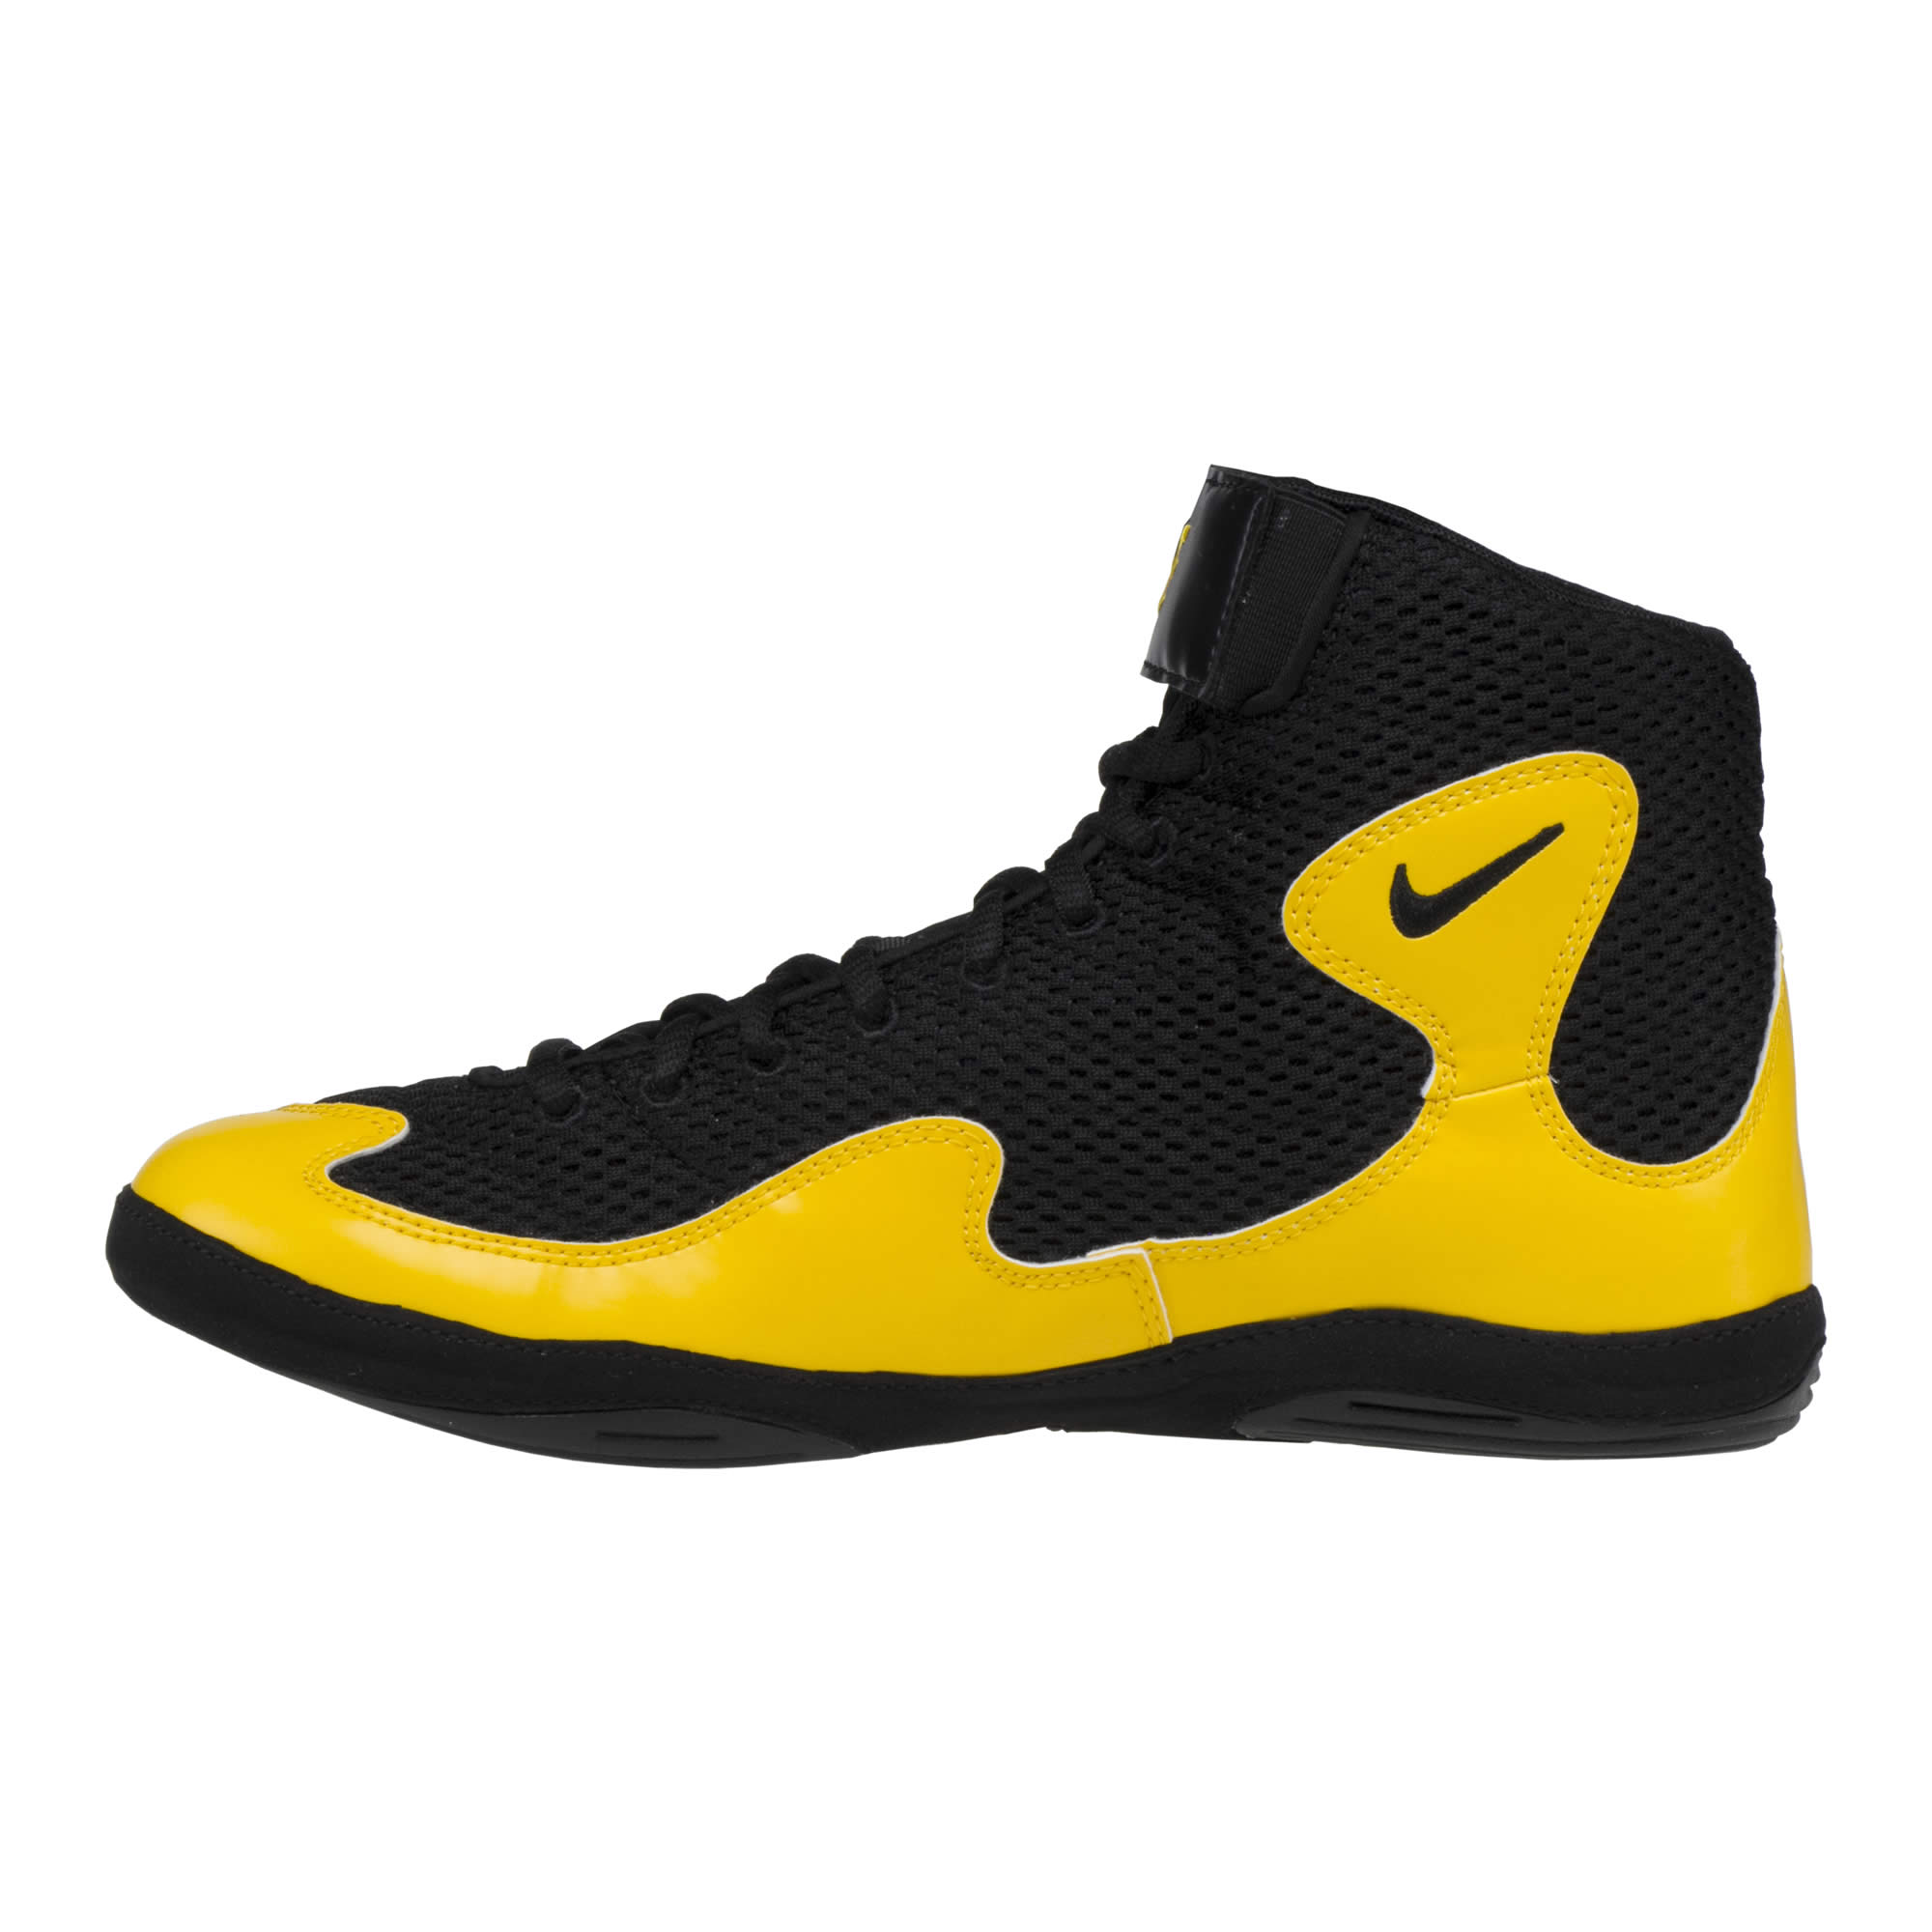 Nike Inflict Wrestling Shoes Ebay